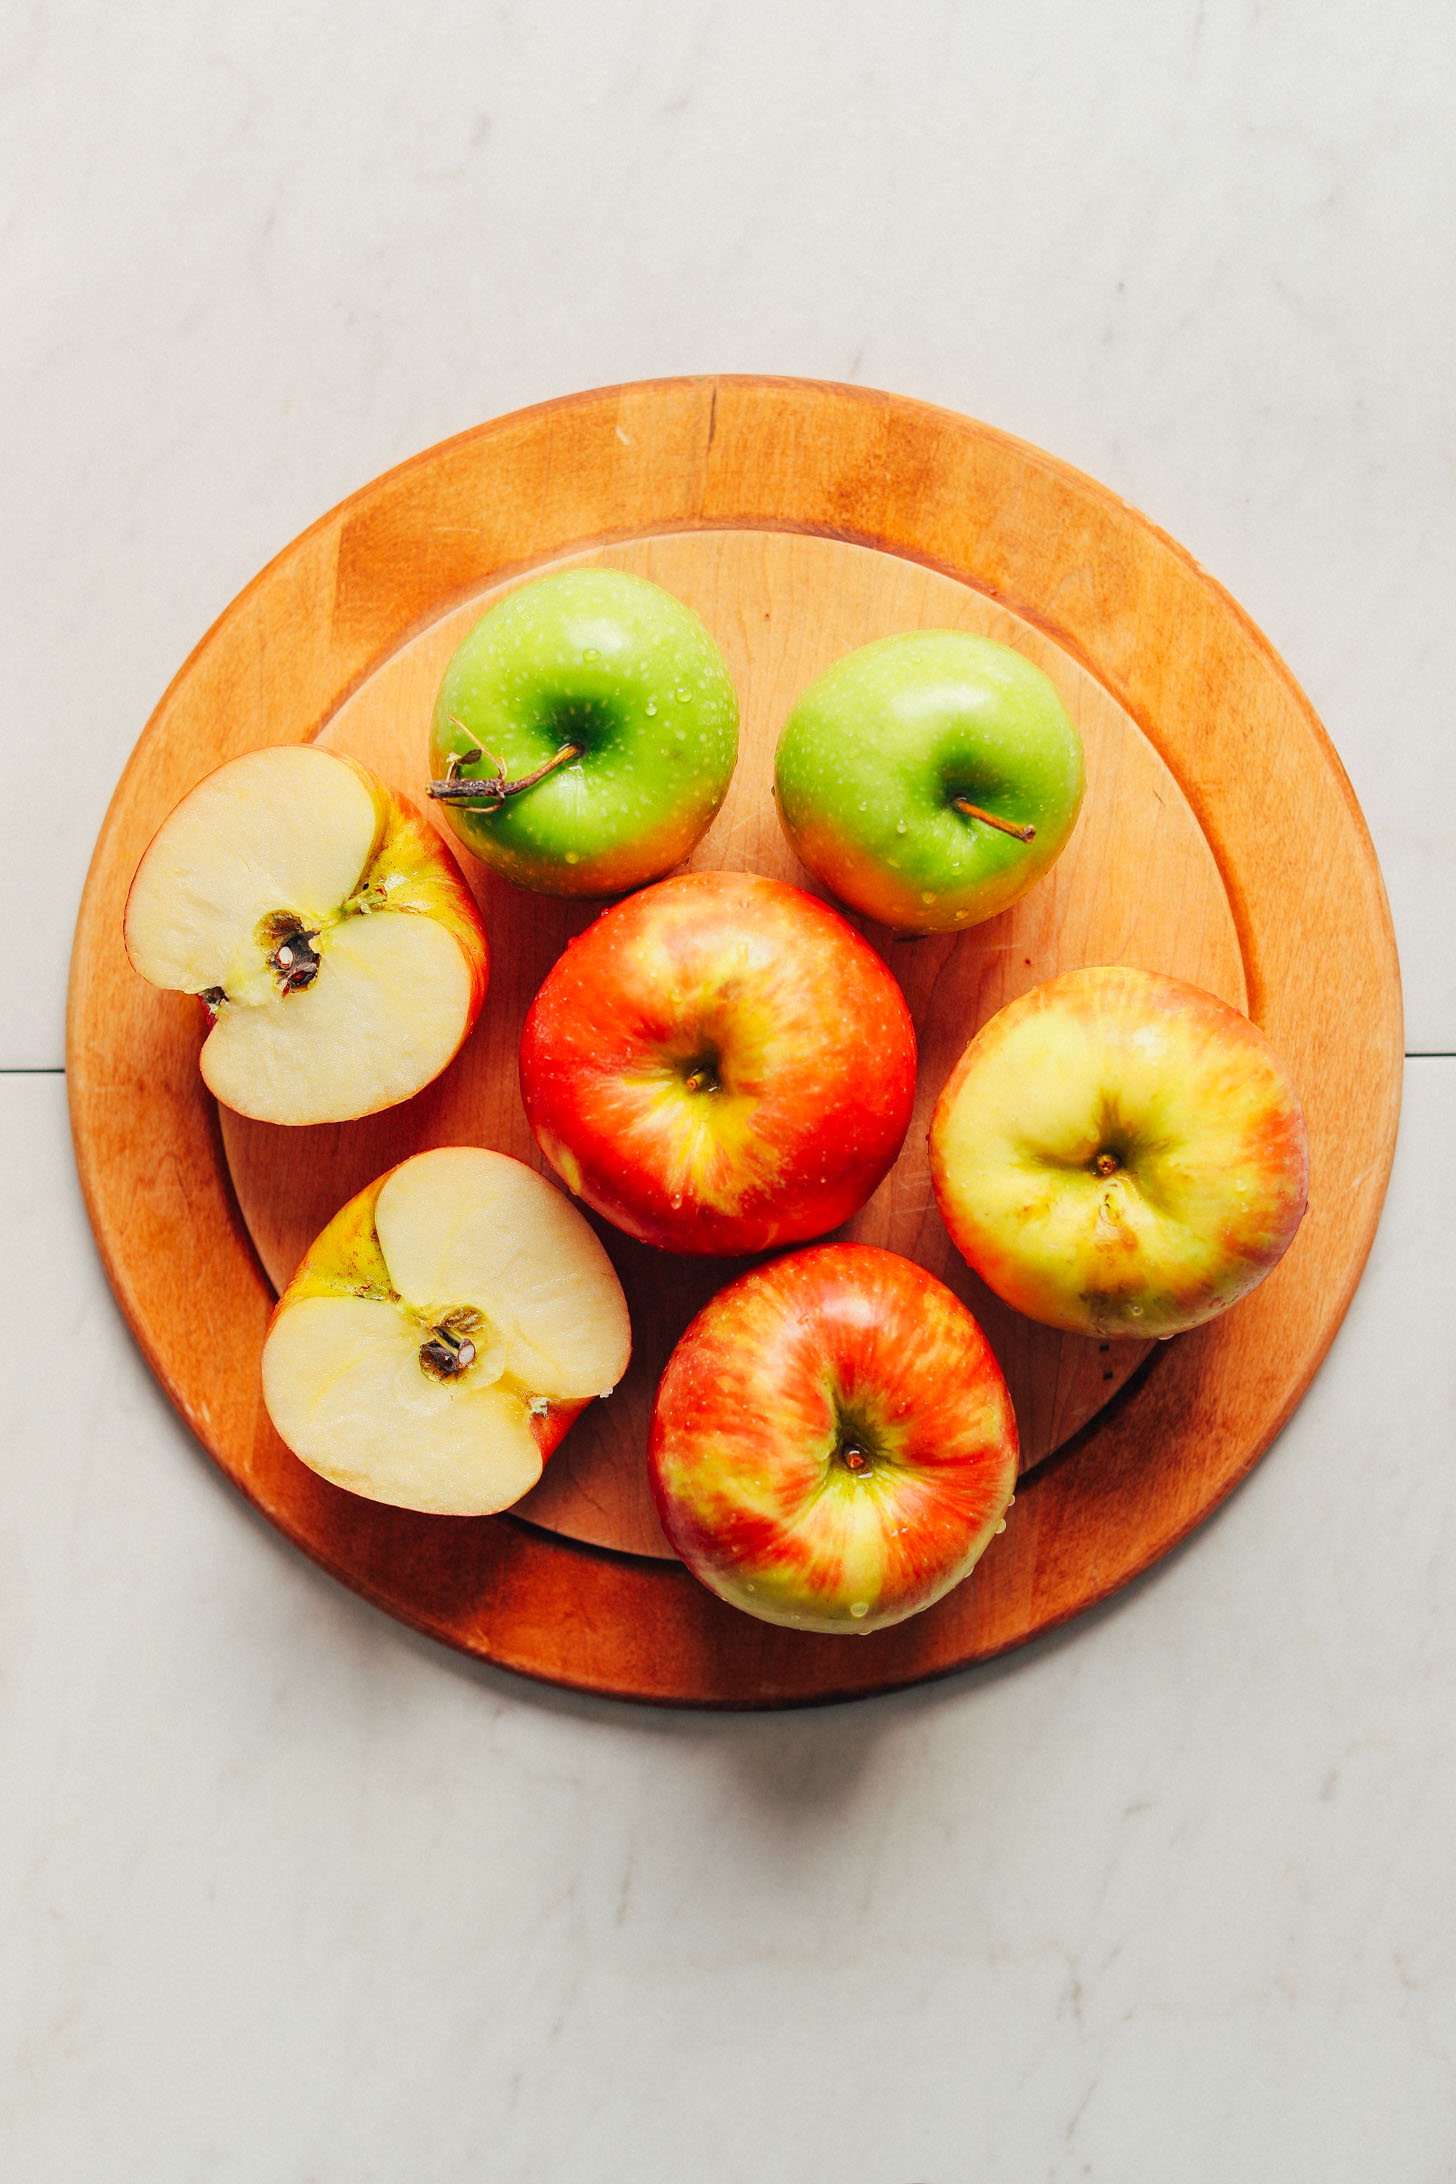 Wood cutting board with sweet and tart apples